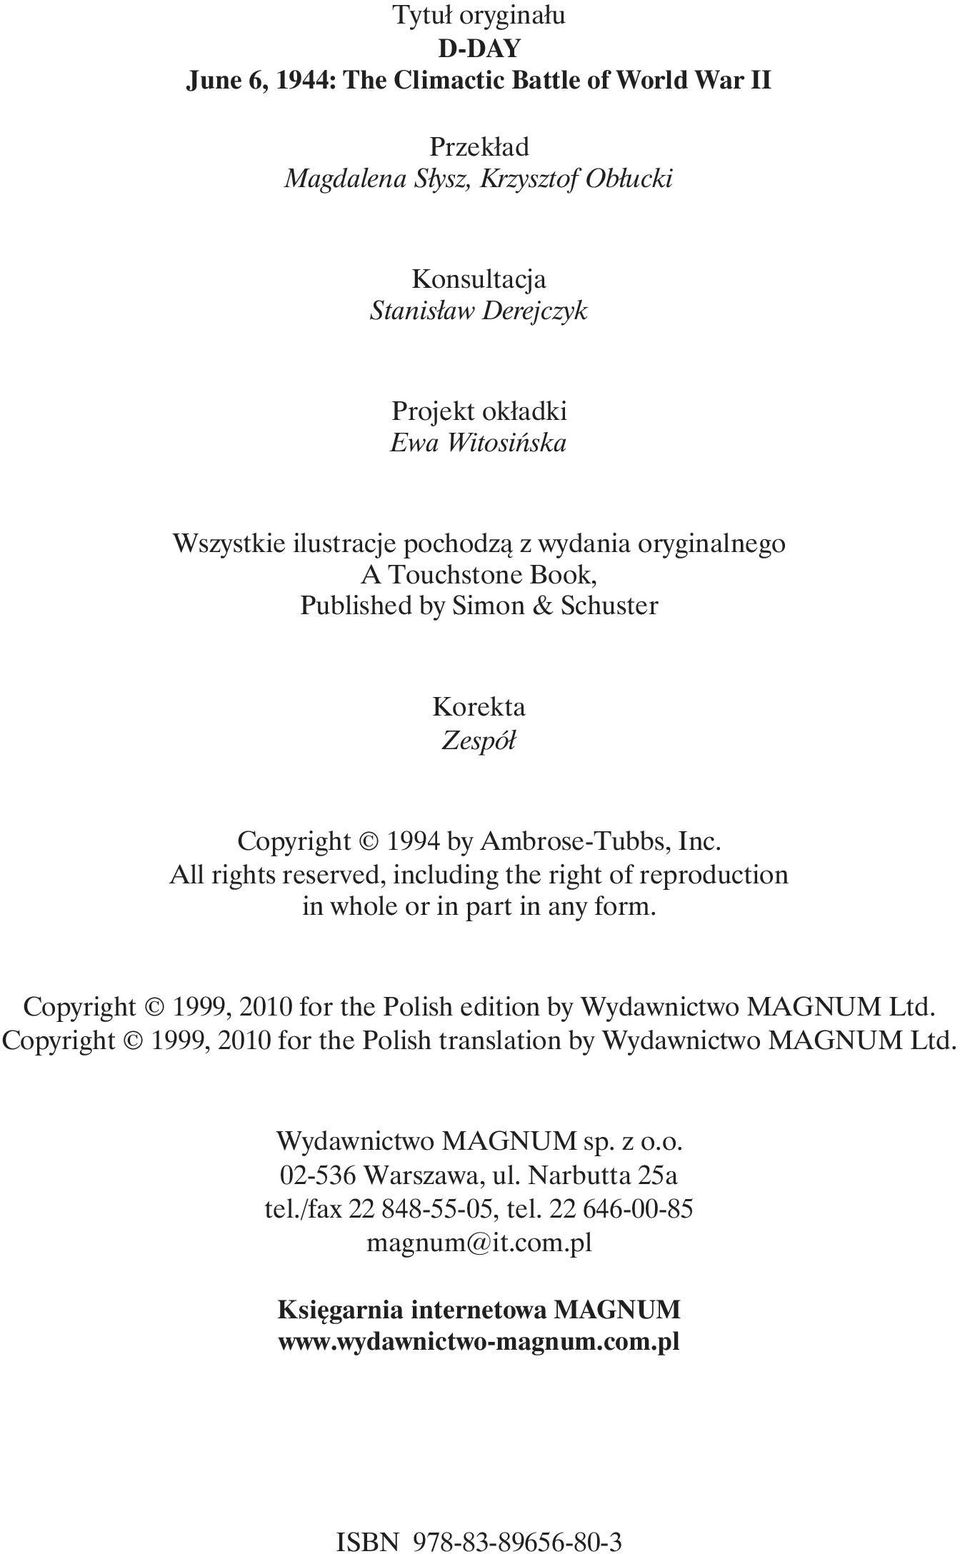 All rights reserved, including the right of reproduction in whole or in part in any form. Copyright 1999, 2010 for the Polish edition by Wydawnictwo MAGNUM Ltd.